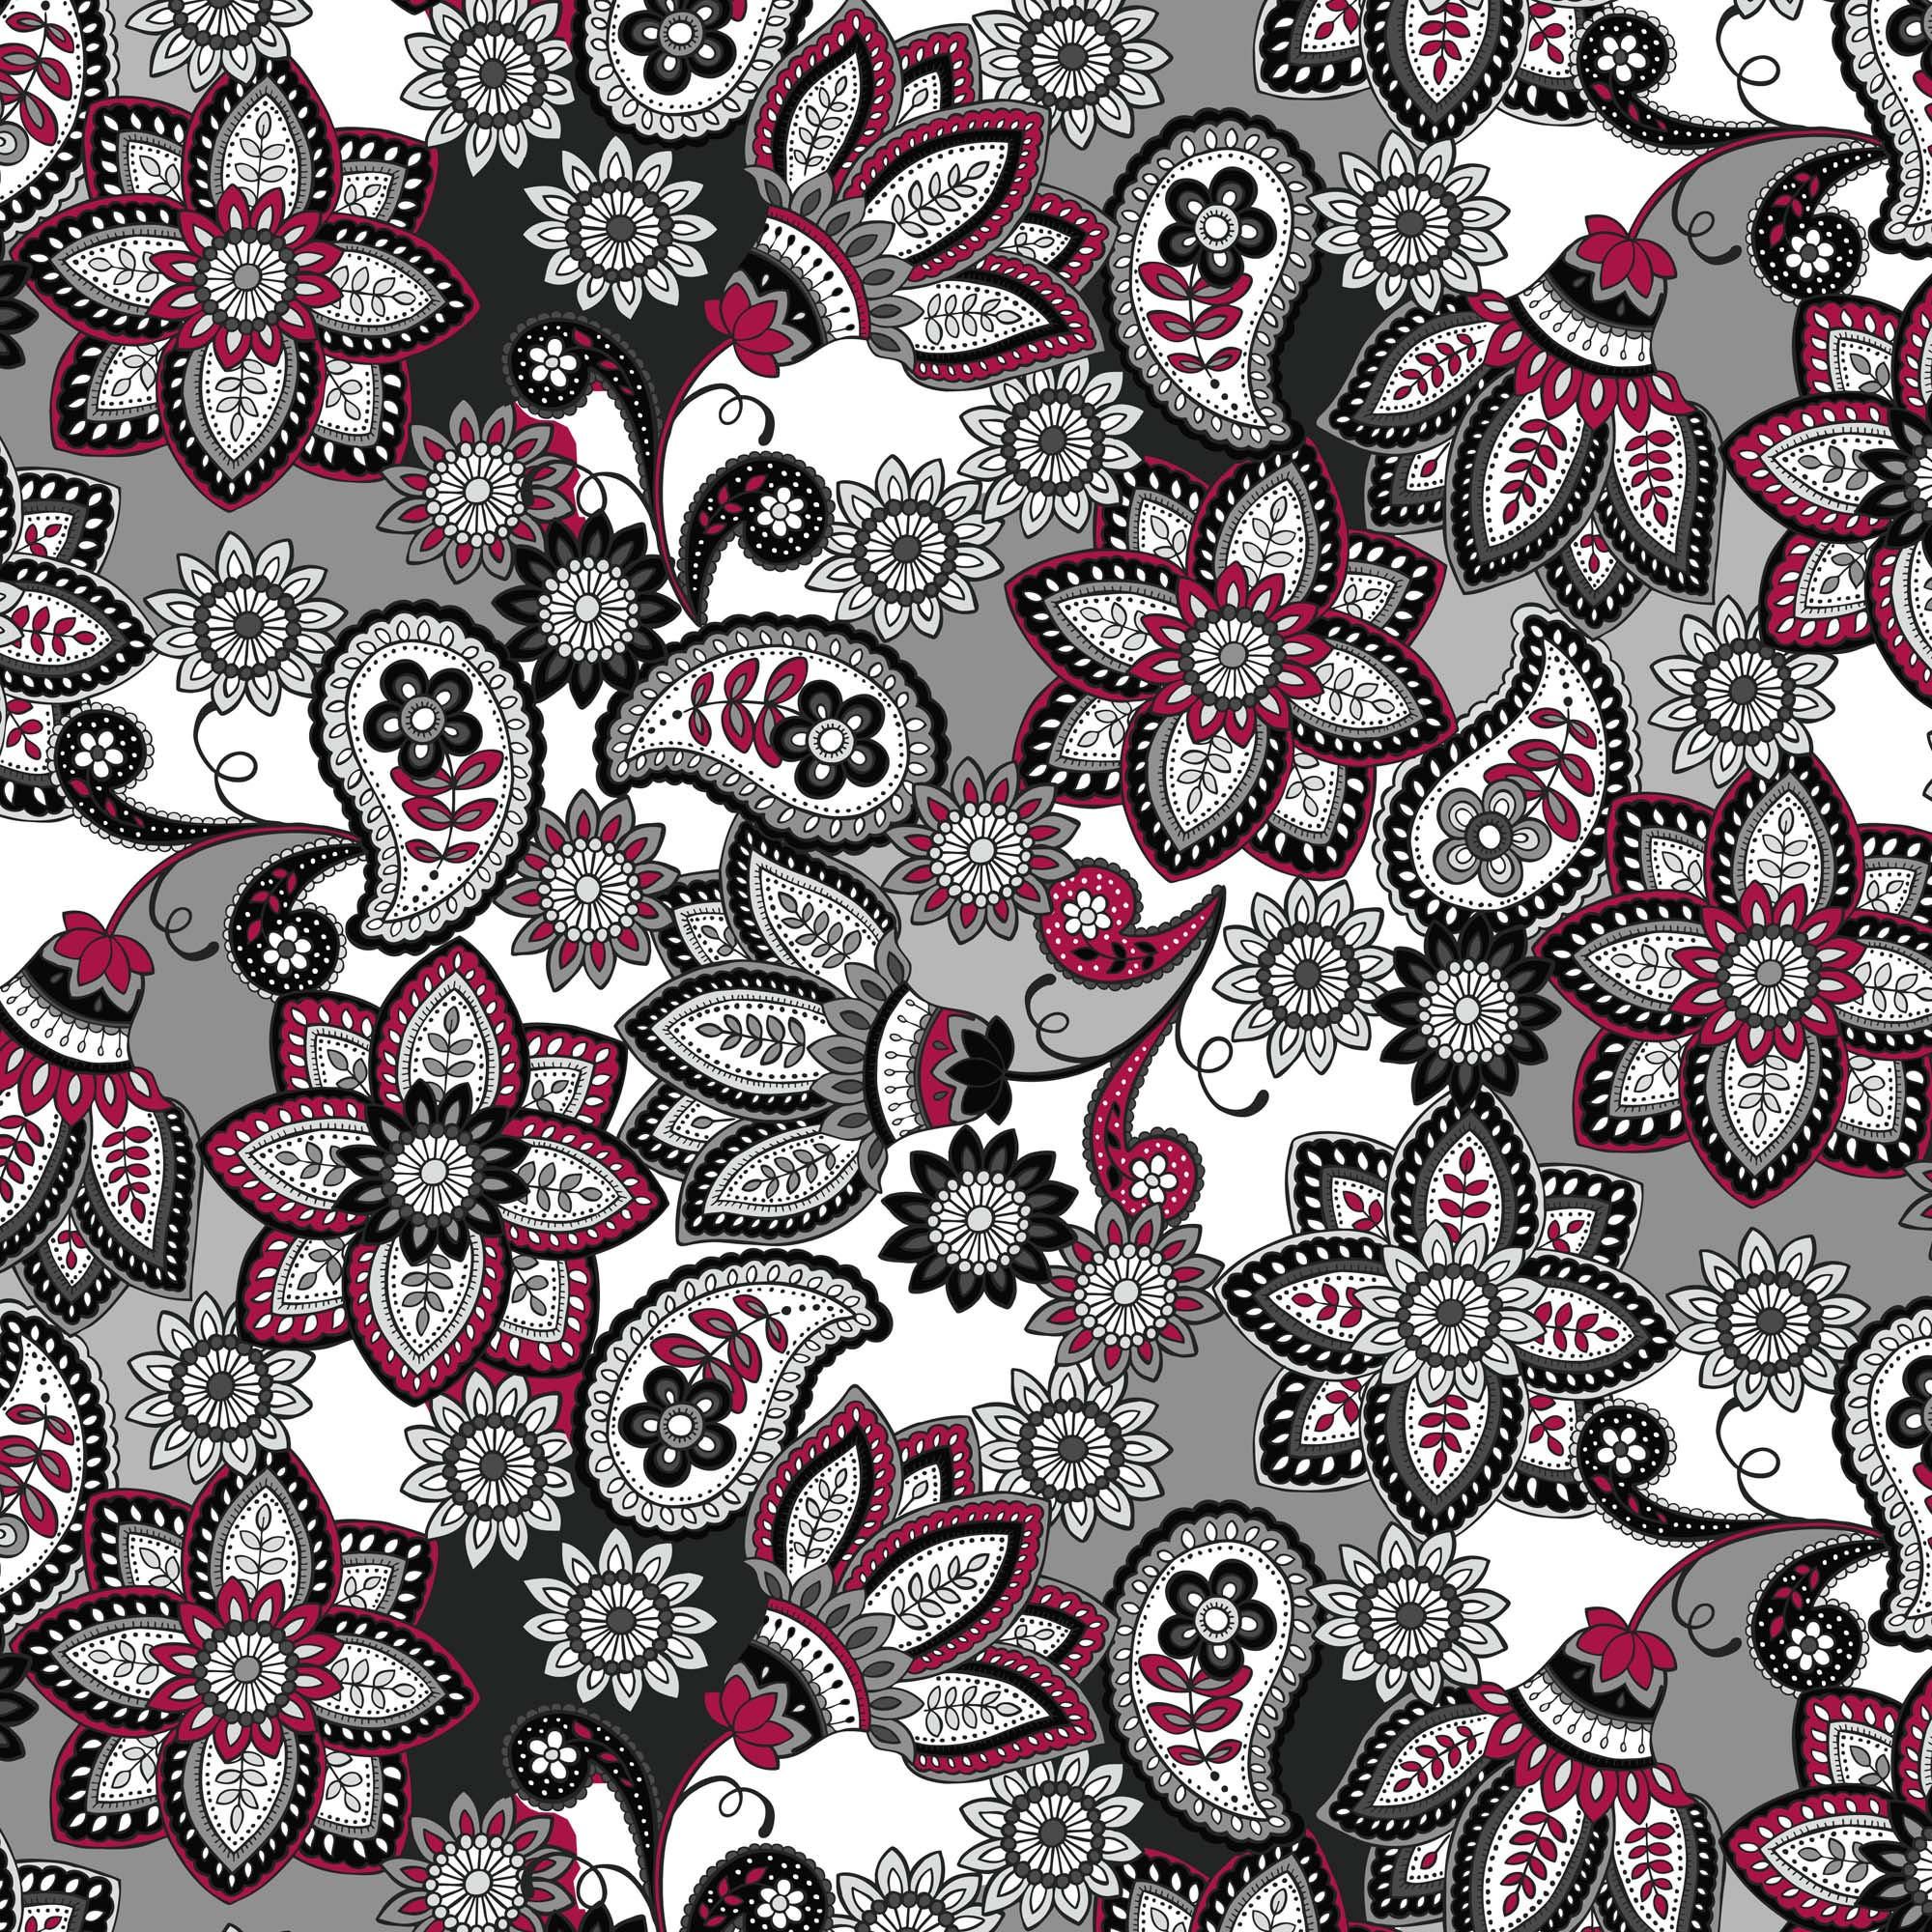 David Textiles Cotton Precut Fabric Bali Beauty 1 Yd X 44 Inches